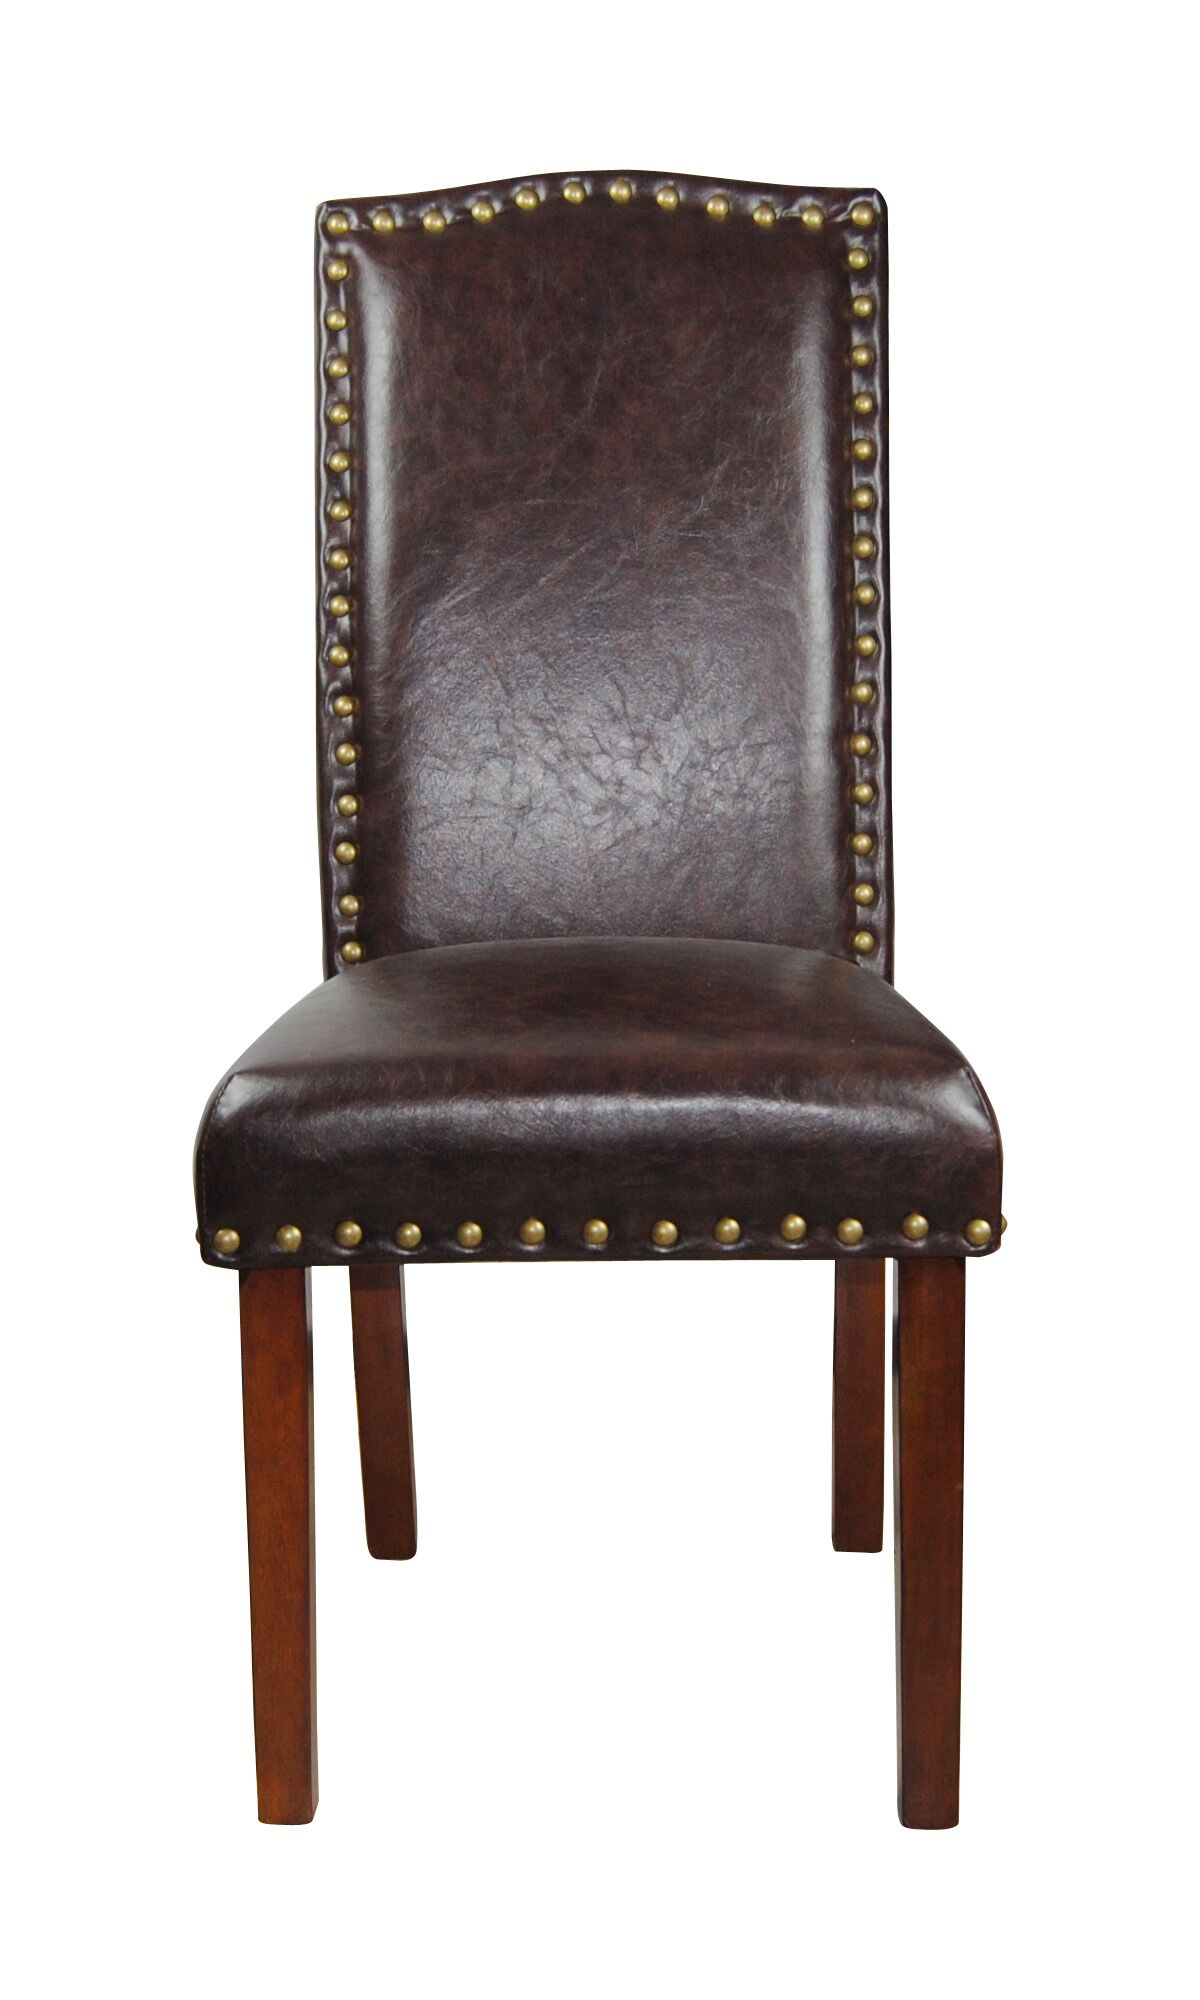 Castilian Leather Upholstered Dining Chair Upholstery Color: Espresso